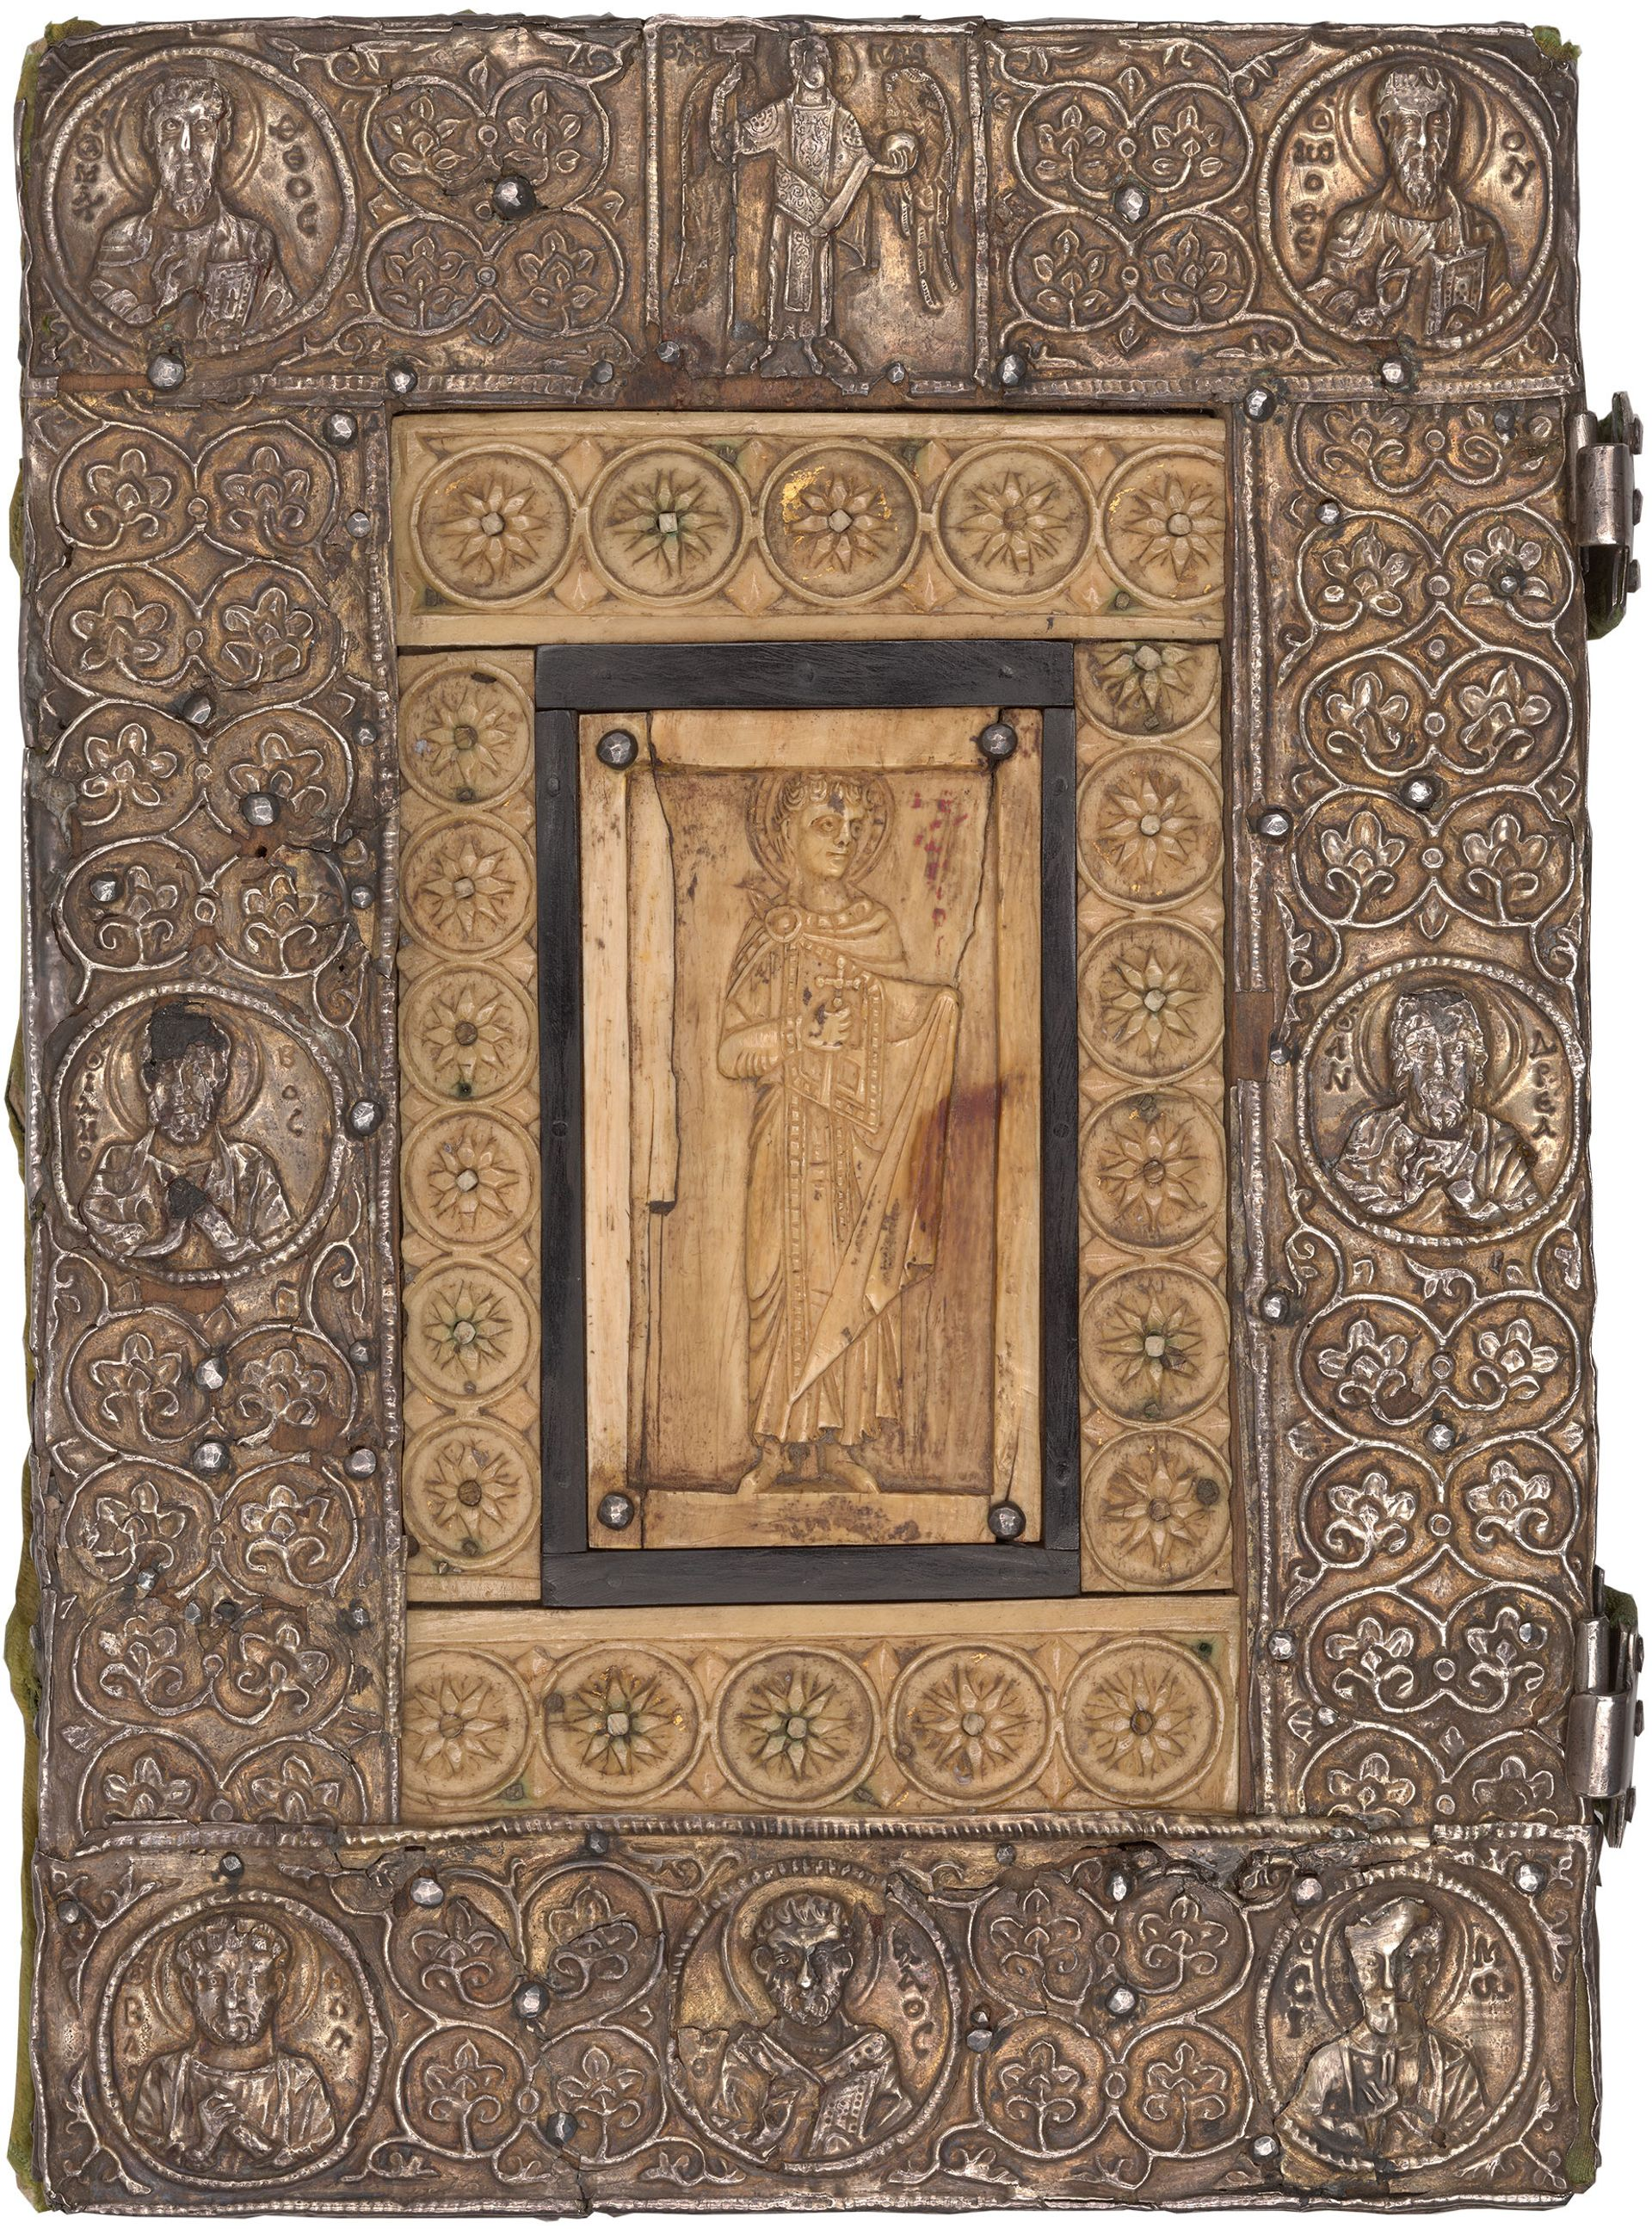 A sacramentary in the Morgan Library & Museum's collection that is thought to date to around 1050 Morgan Library & Museum